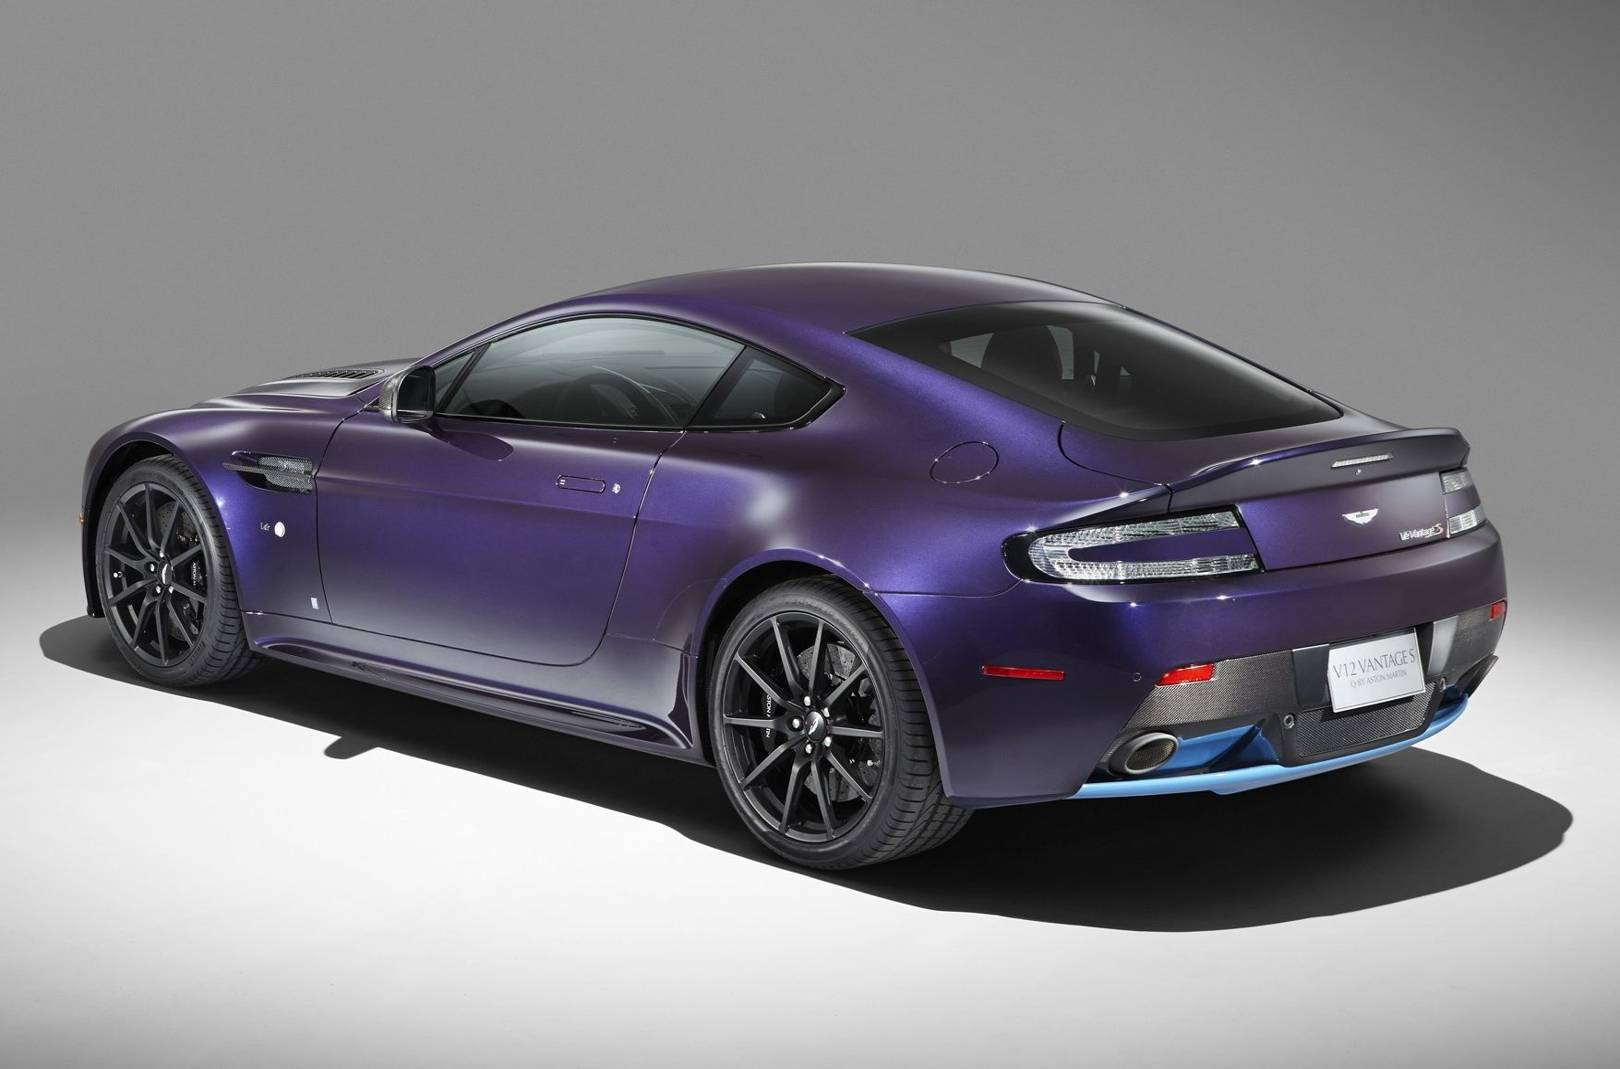 Aston Martin Vantage V Astons Fastest Car Ever British GQ - Aston martin vantage v12